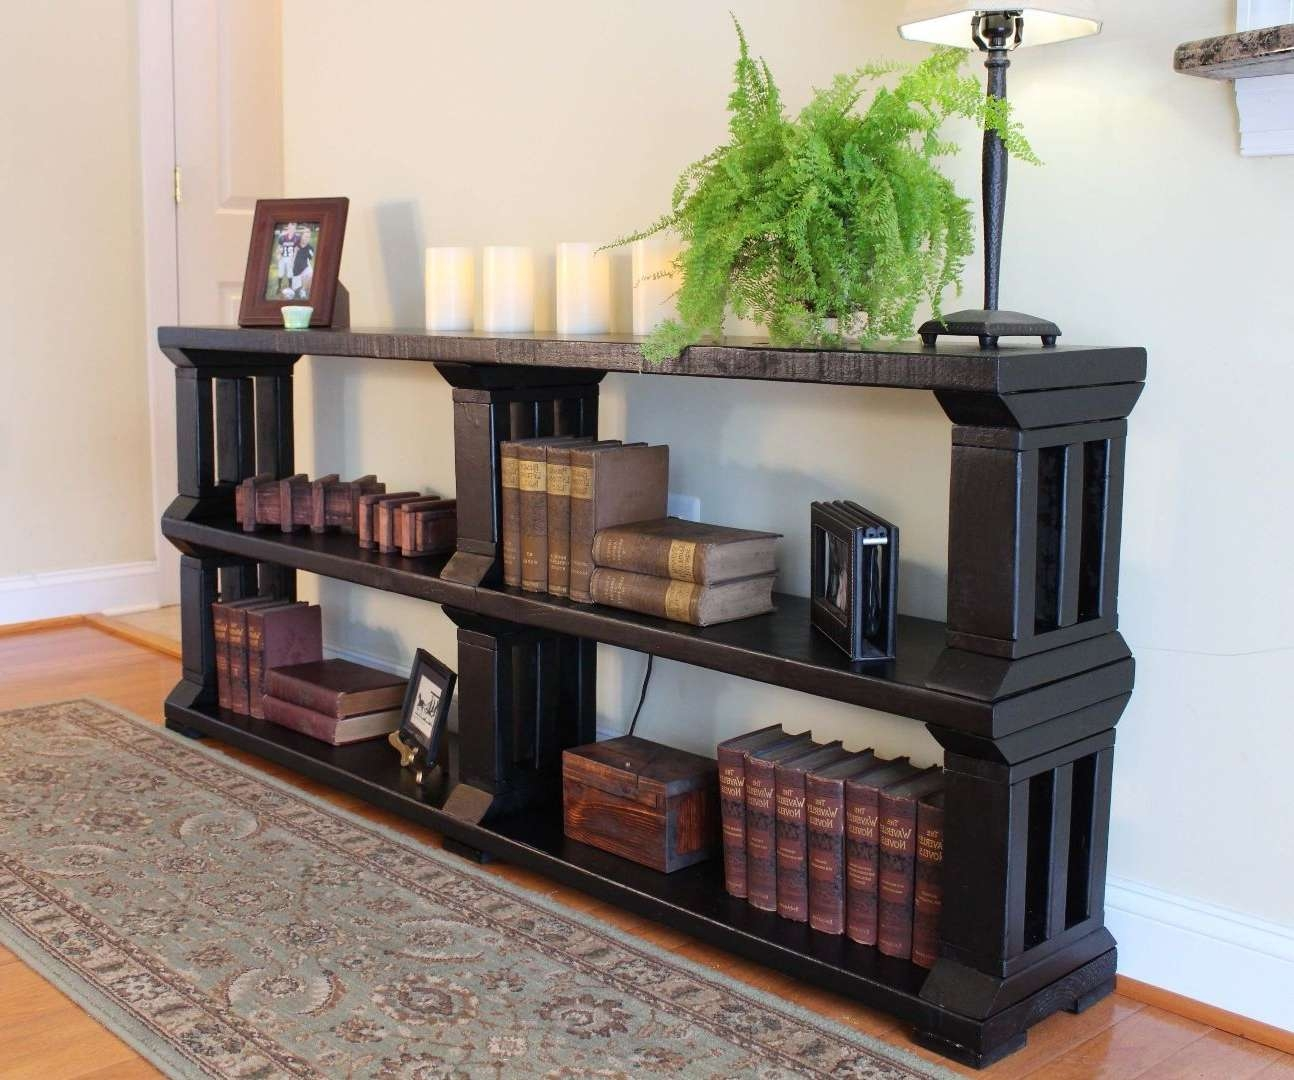 Rustic Book Shelf Or Tv Stand: 13 Steps (with Pictures) Pertaining To Bookshelf And Tv Stands (View 4 of 15)